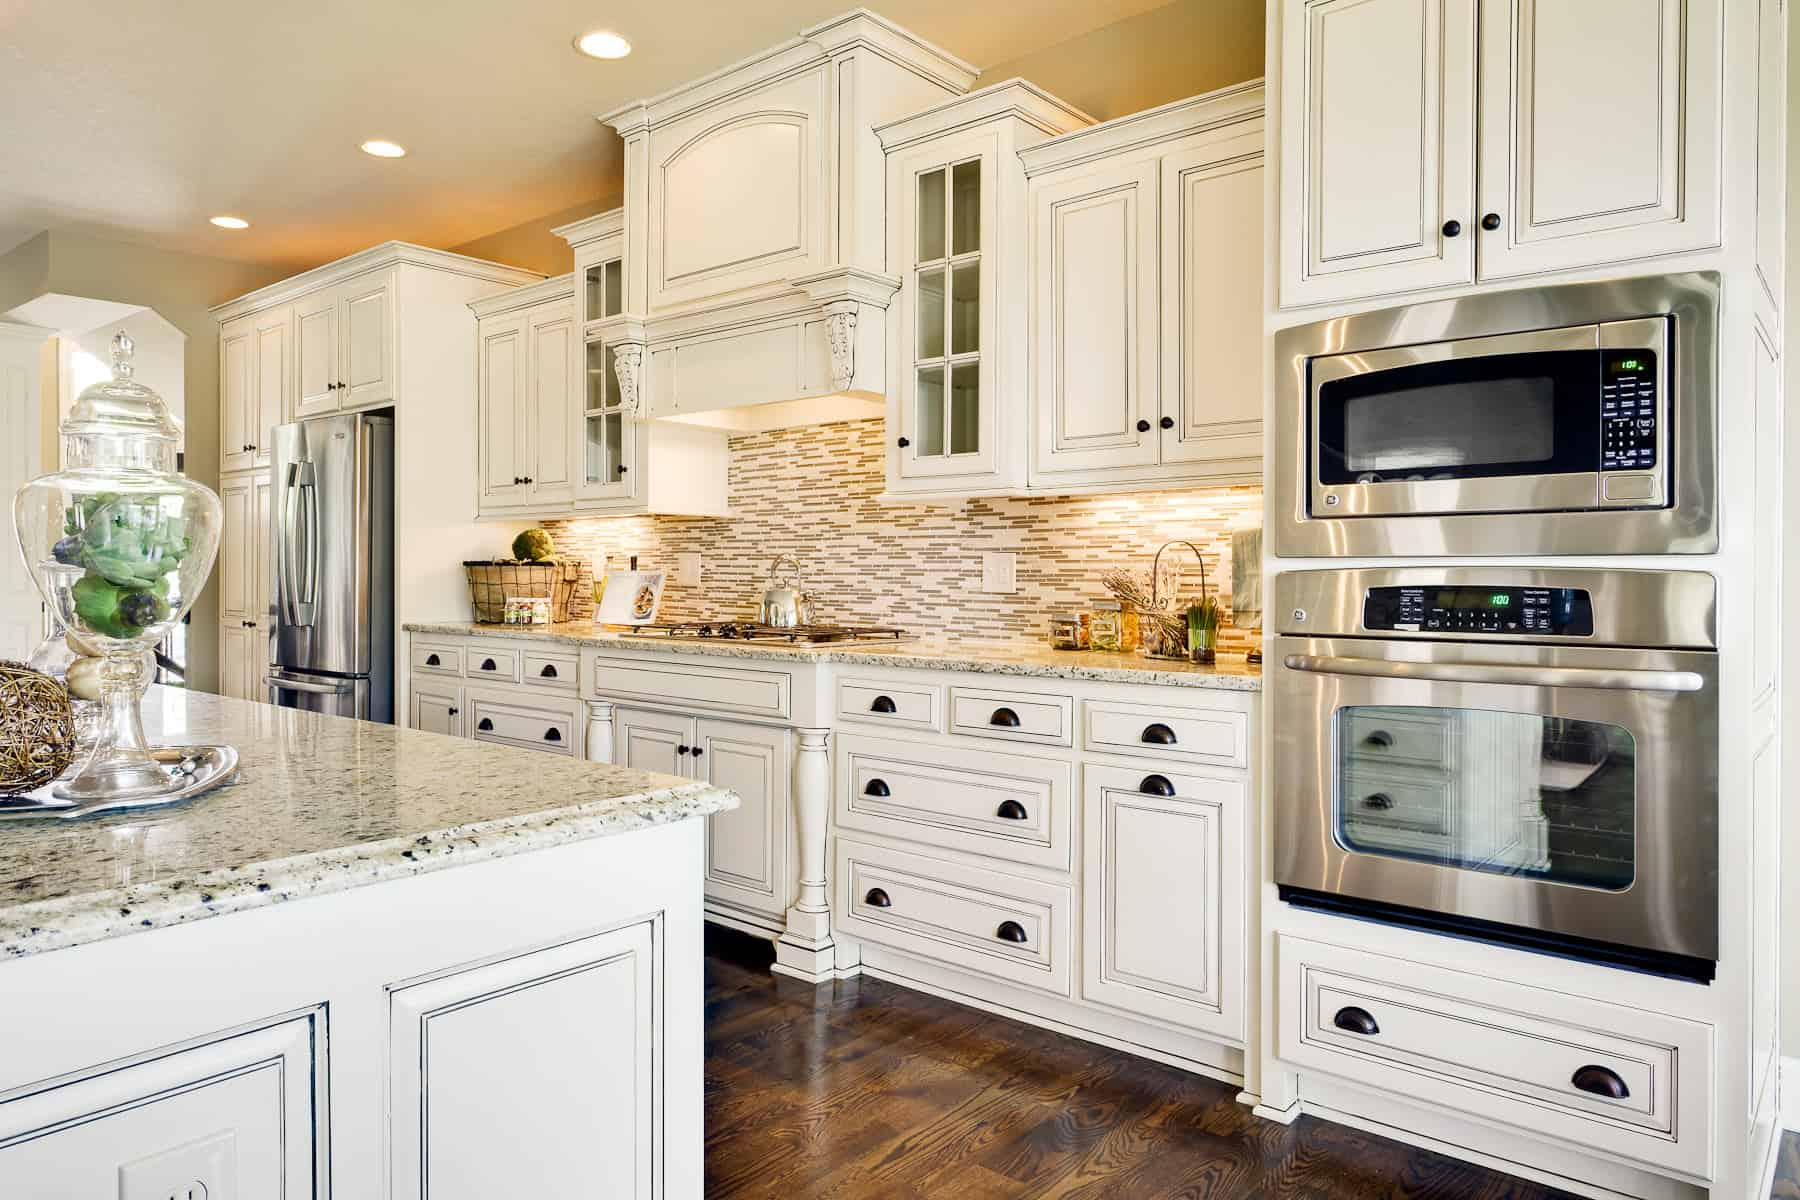 How much do Granite Countertops Cost? | CounterTop Guides